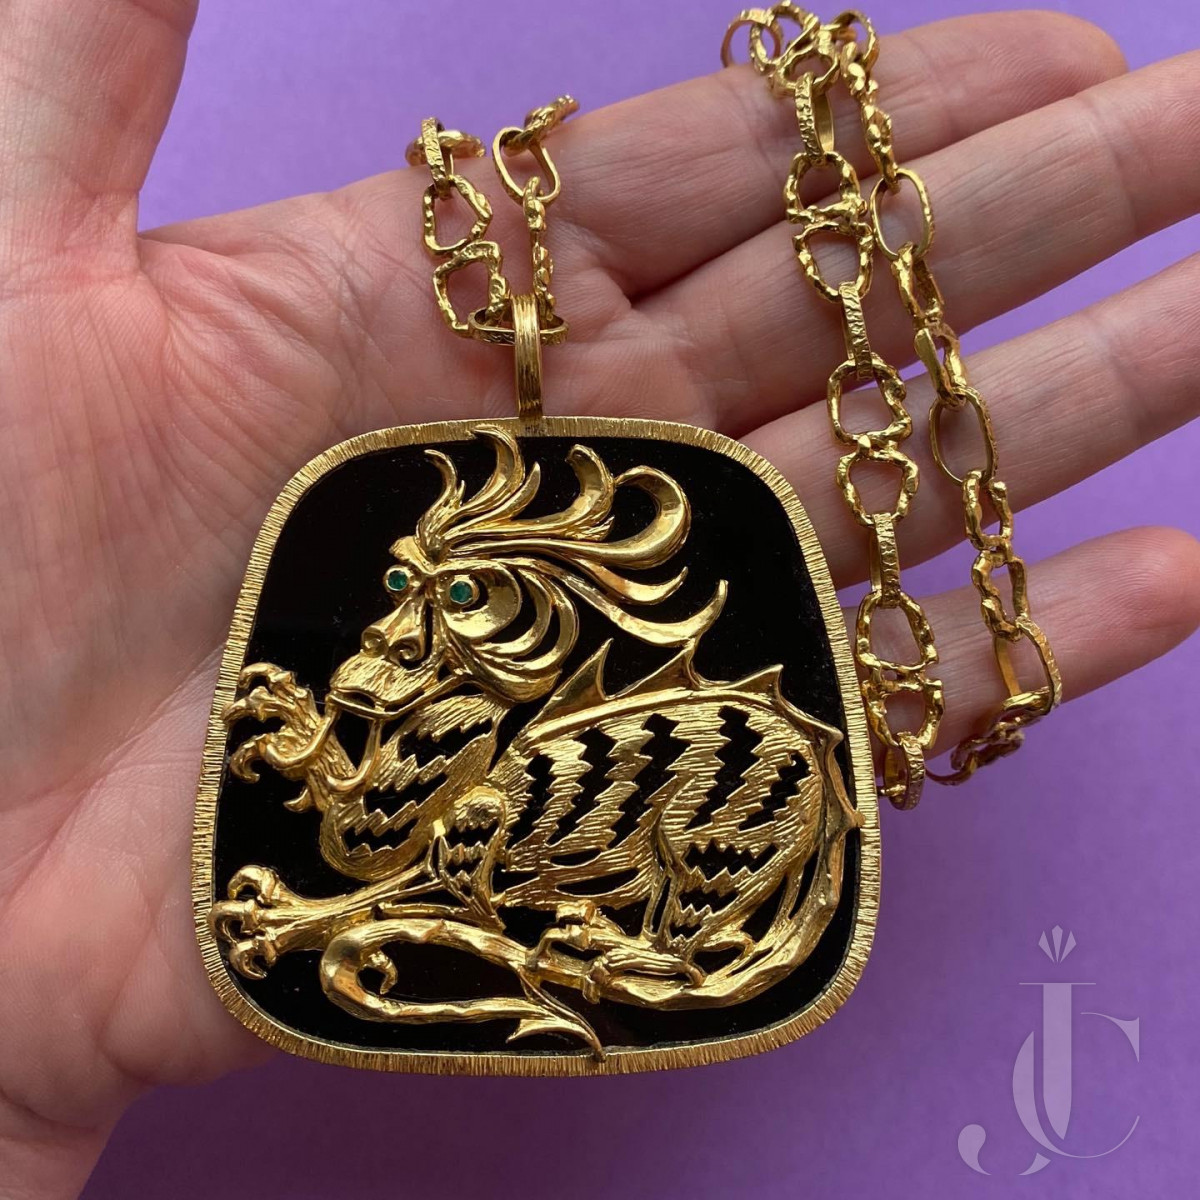 Gold and onyx and emerald dragon pendant and chain